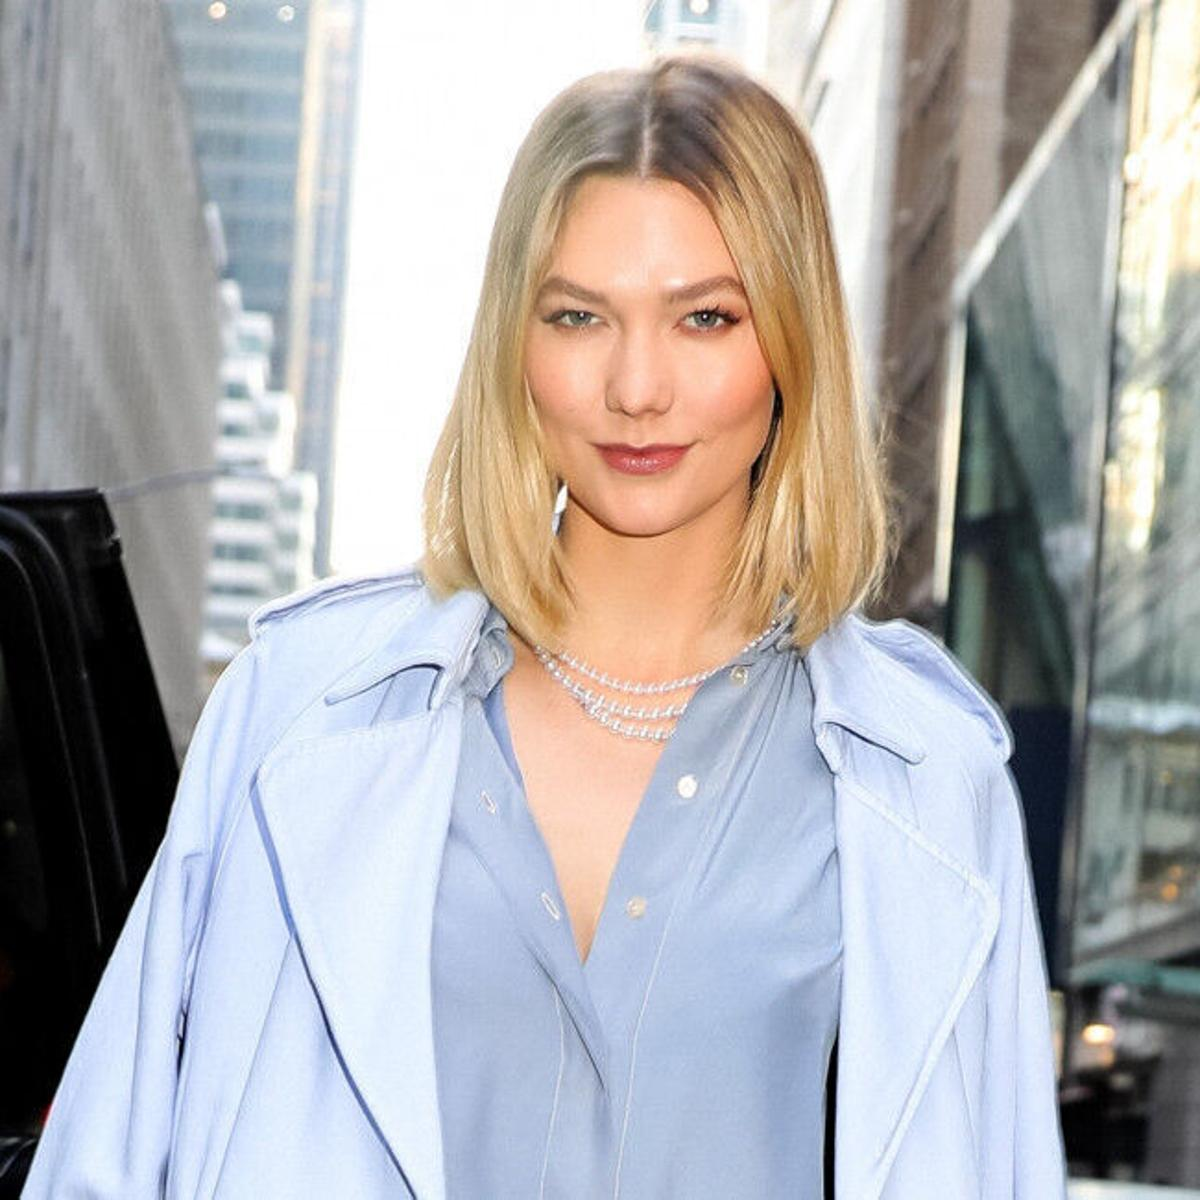 Karlie Kloss Caught on Controversy for Pump Her Breastmilk from the Backside of Her Car 2021